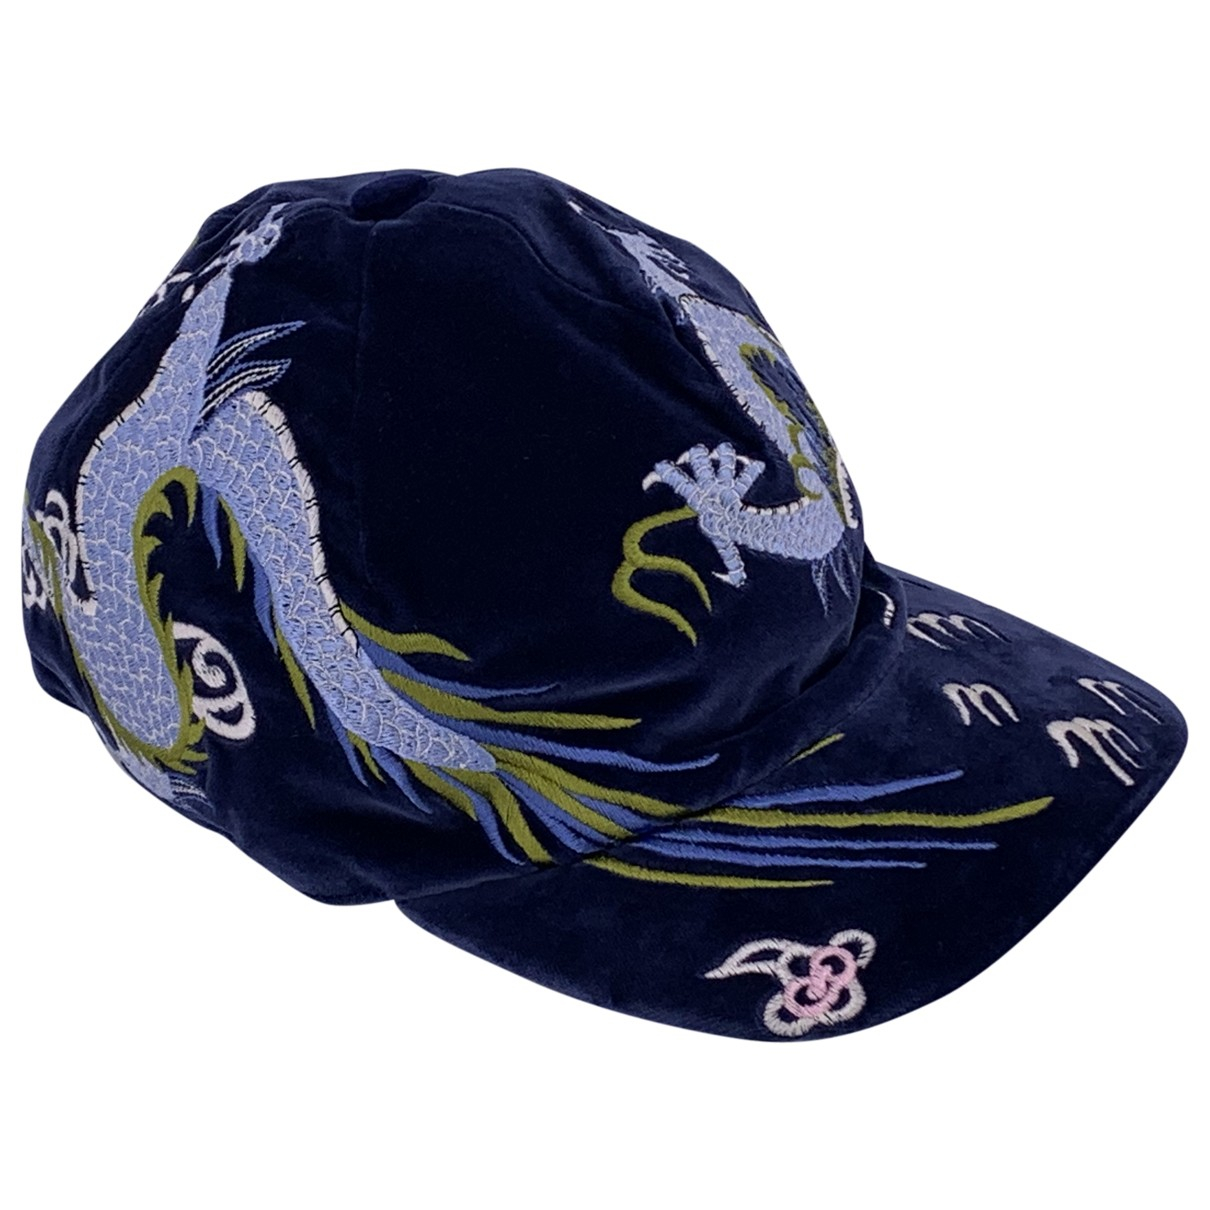 Gucci \N Blue Cotton hat & pull on hat for Men M International